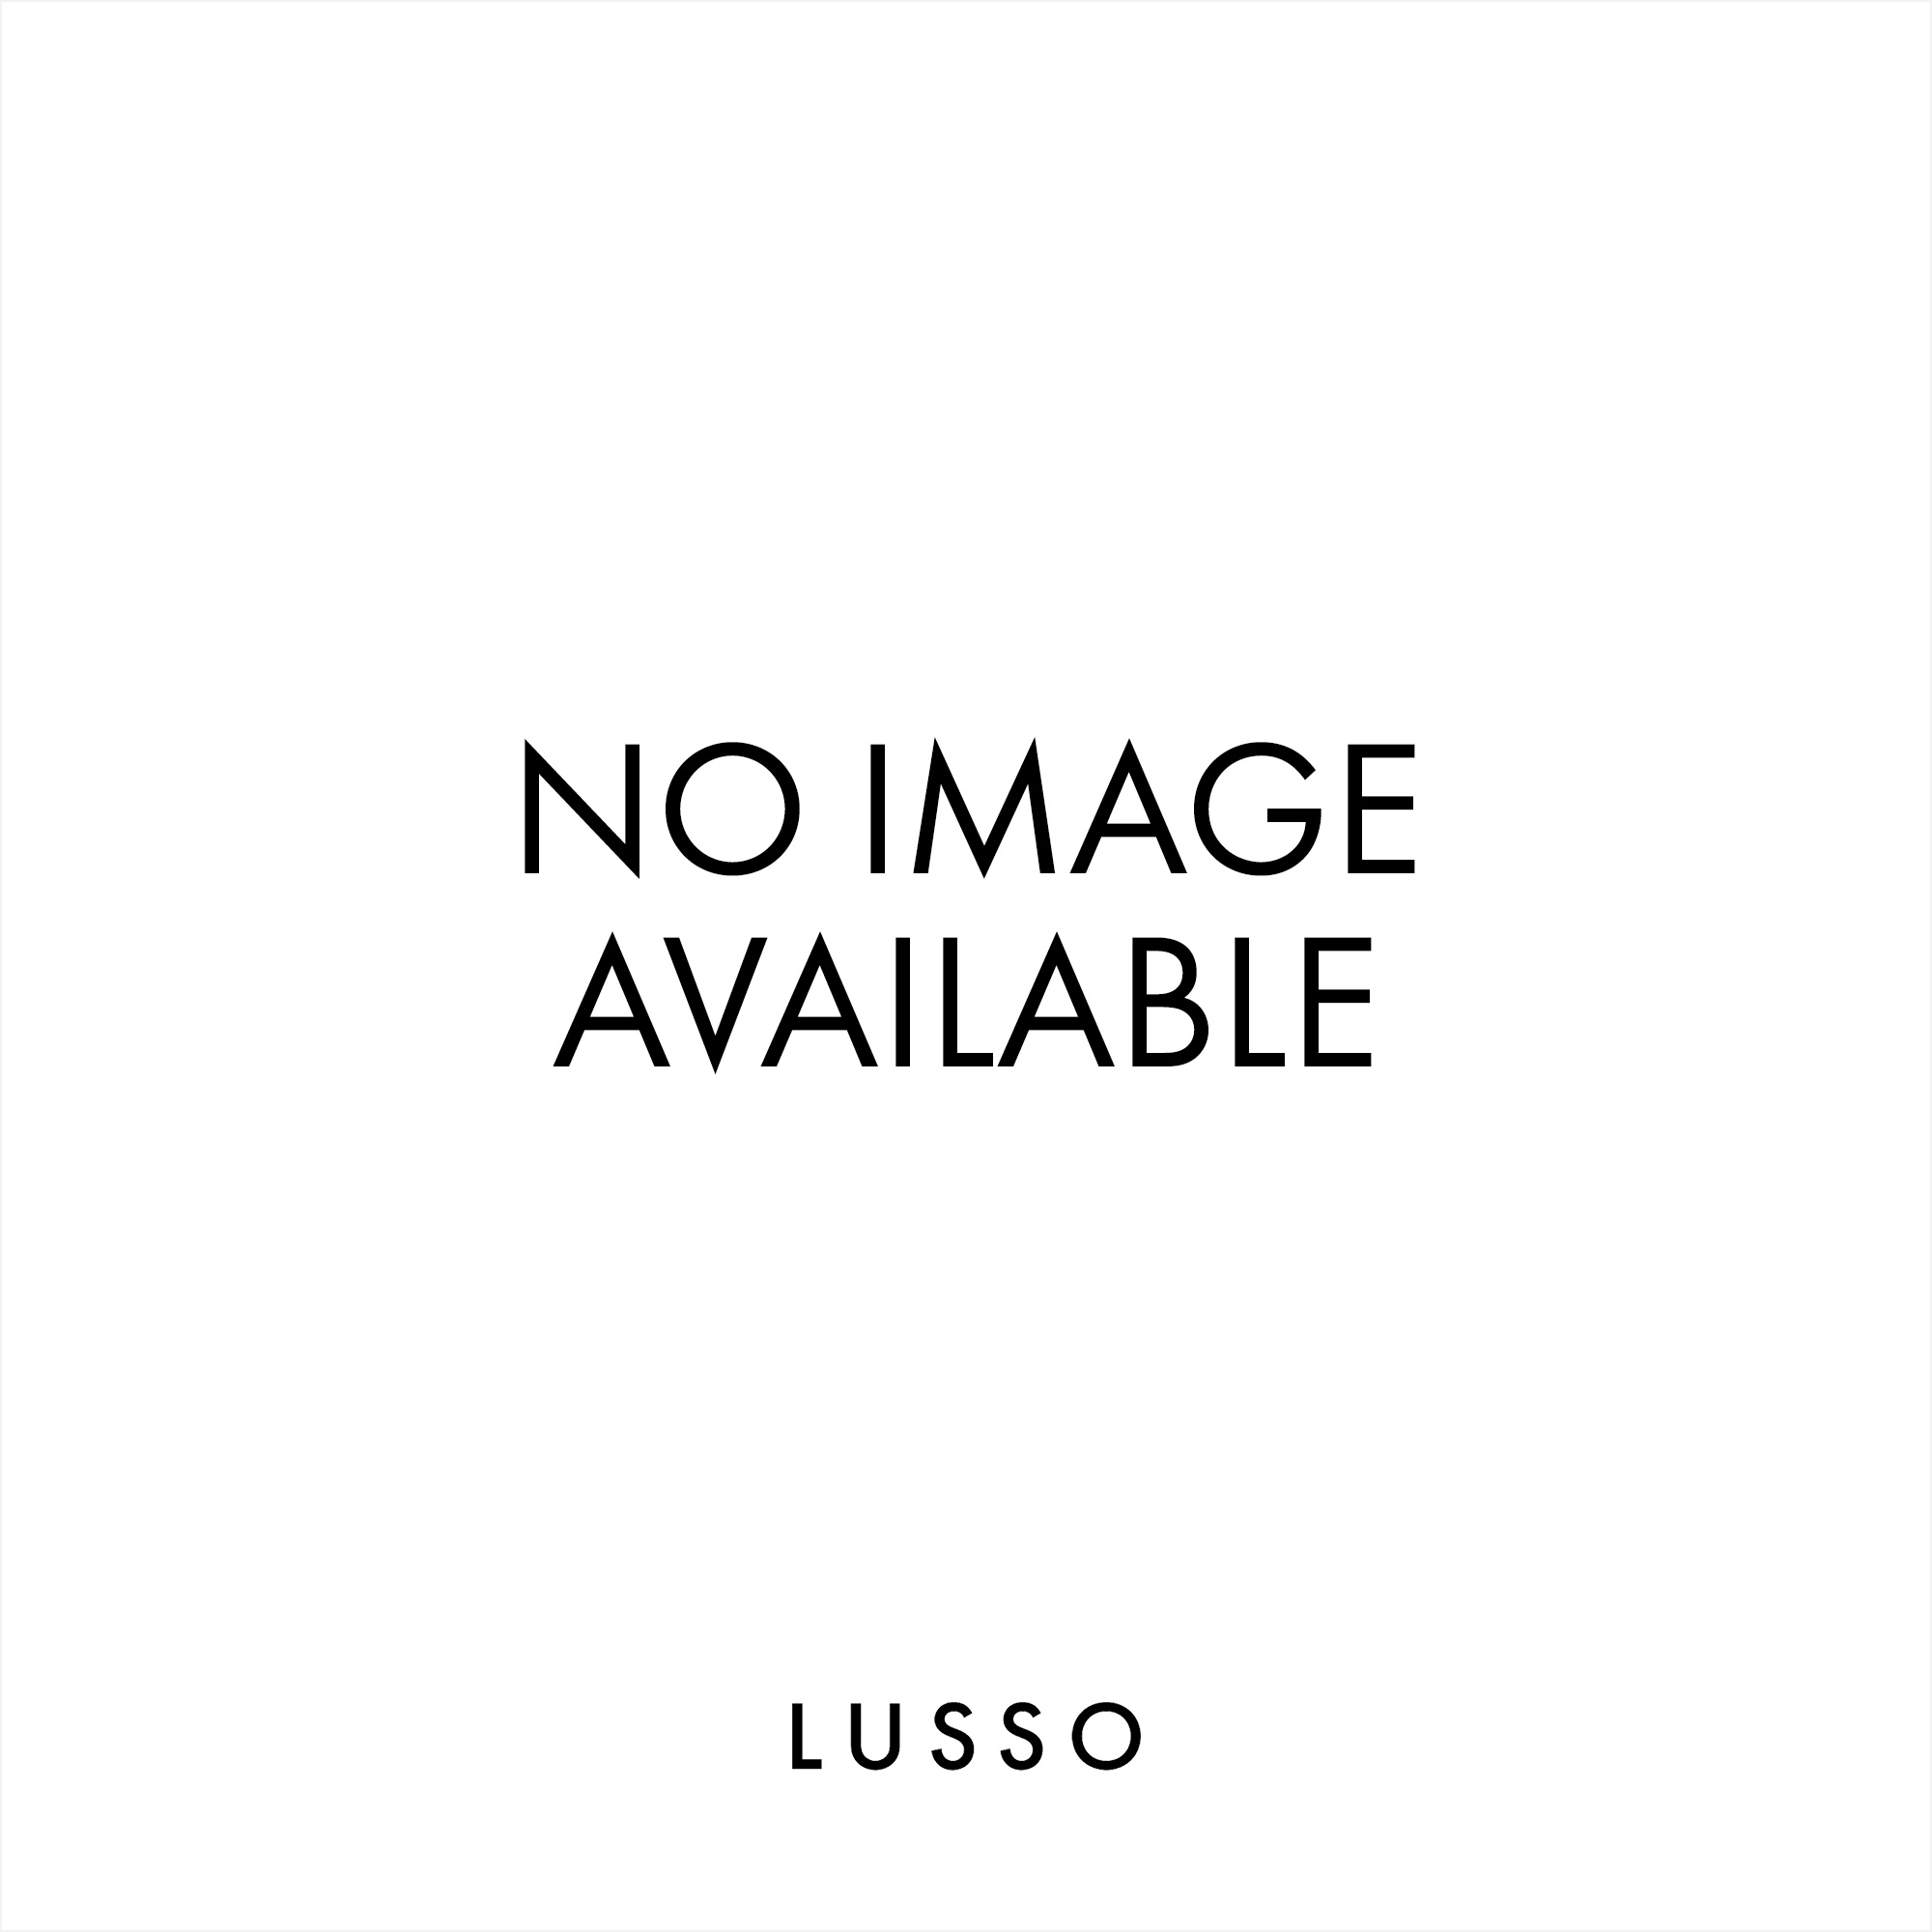 Lusso Stone Solid surface stone resin mirror matte finish 1200 curved